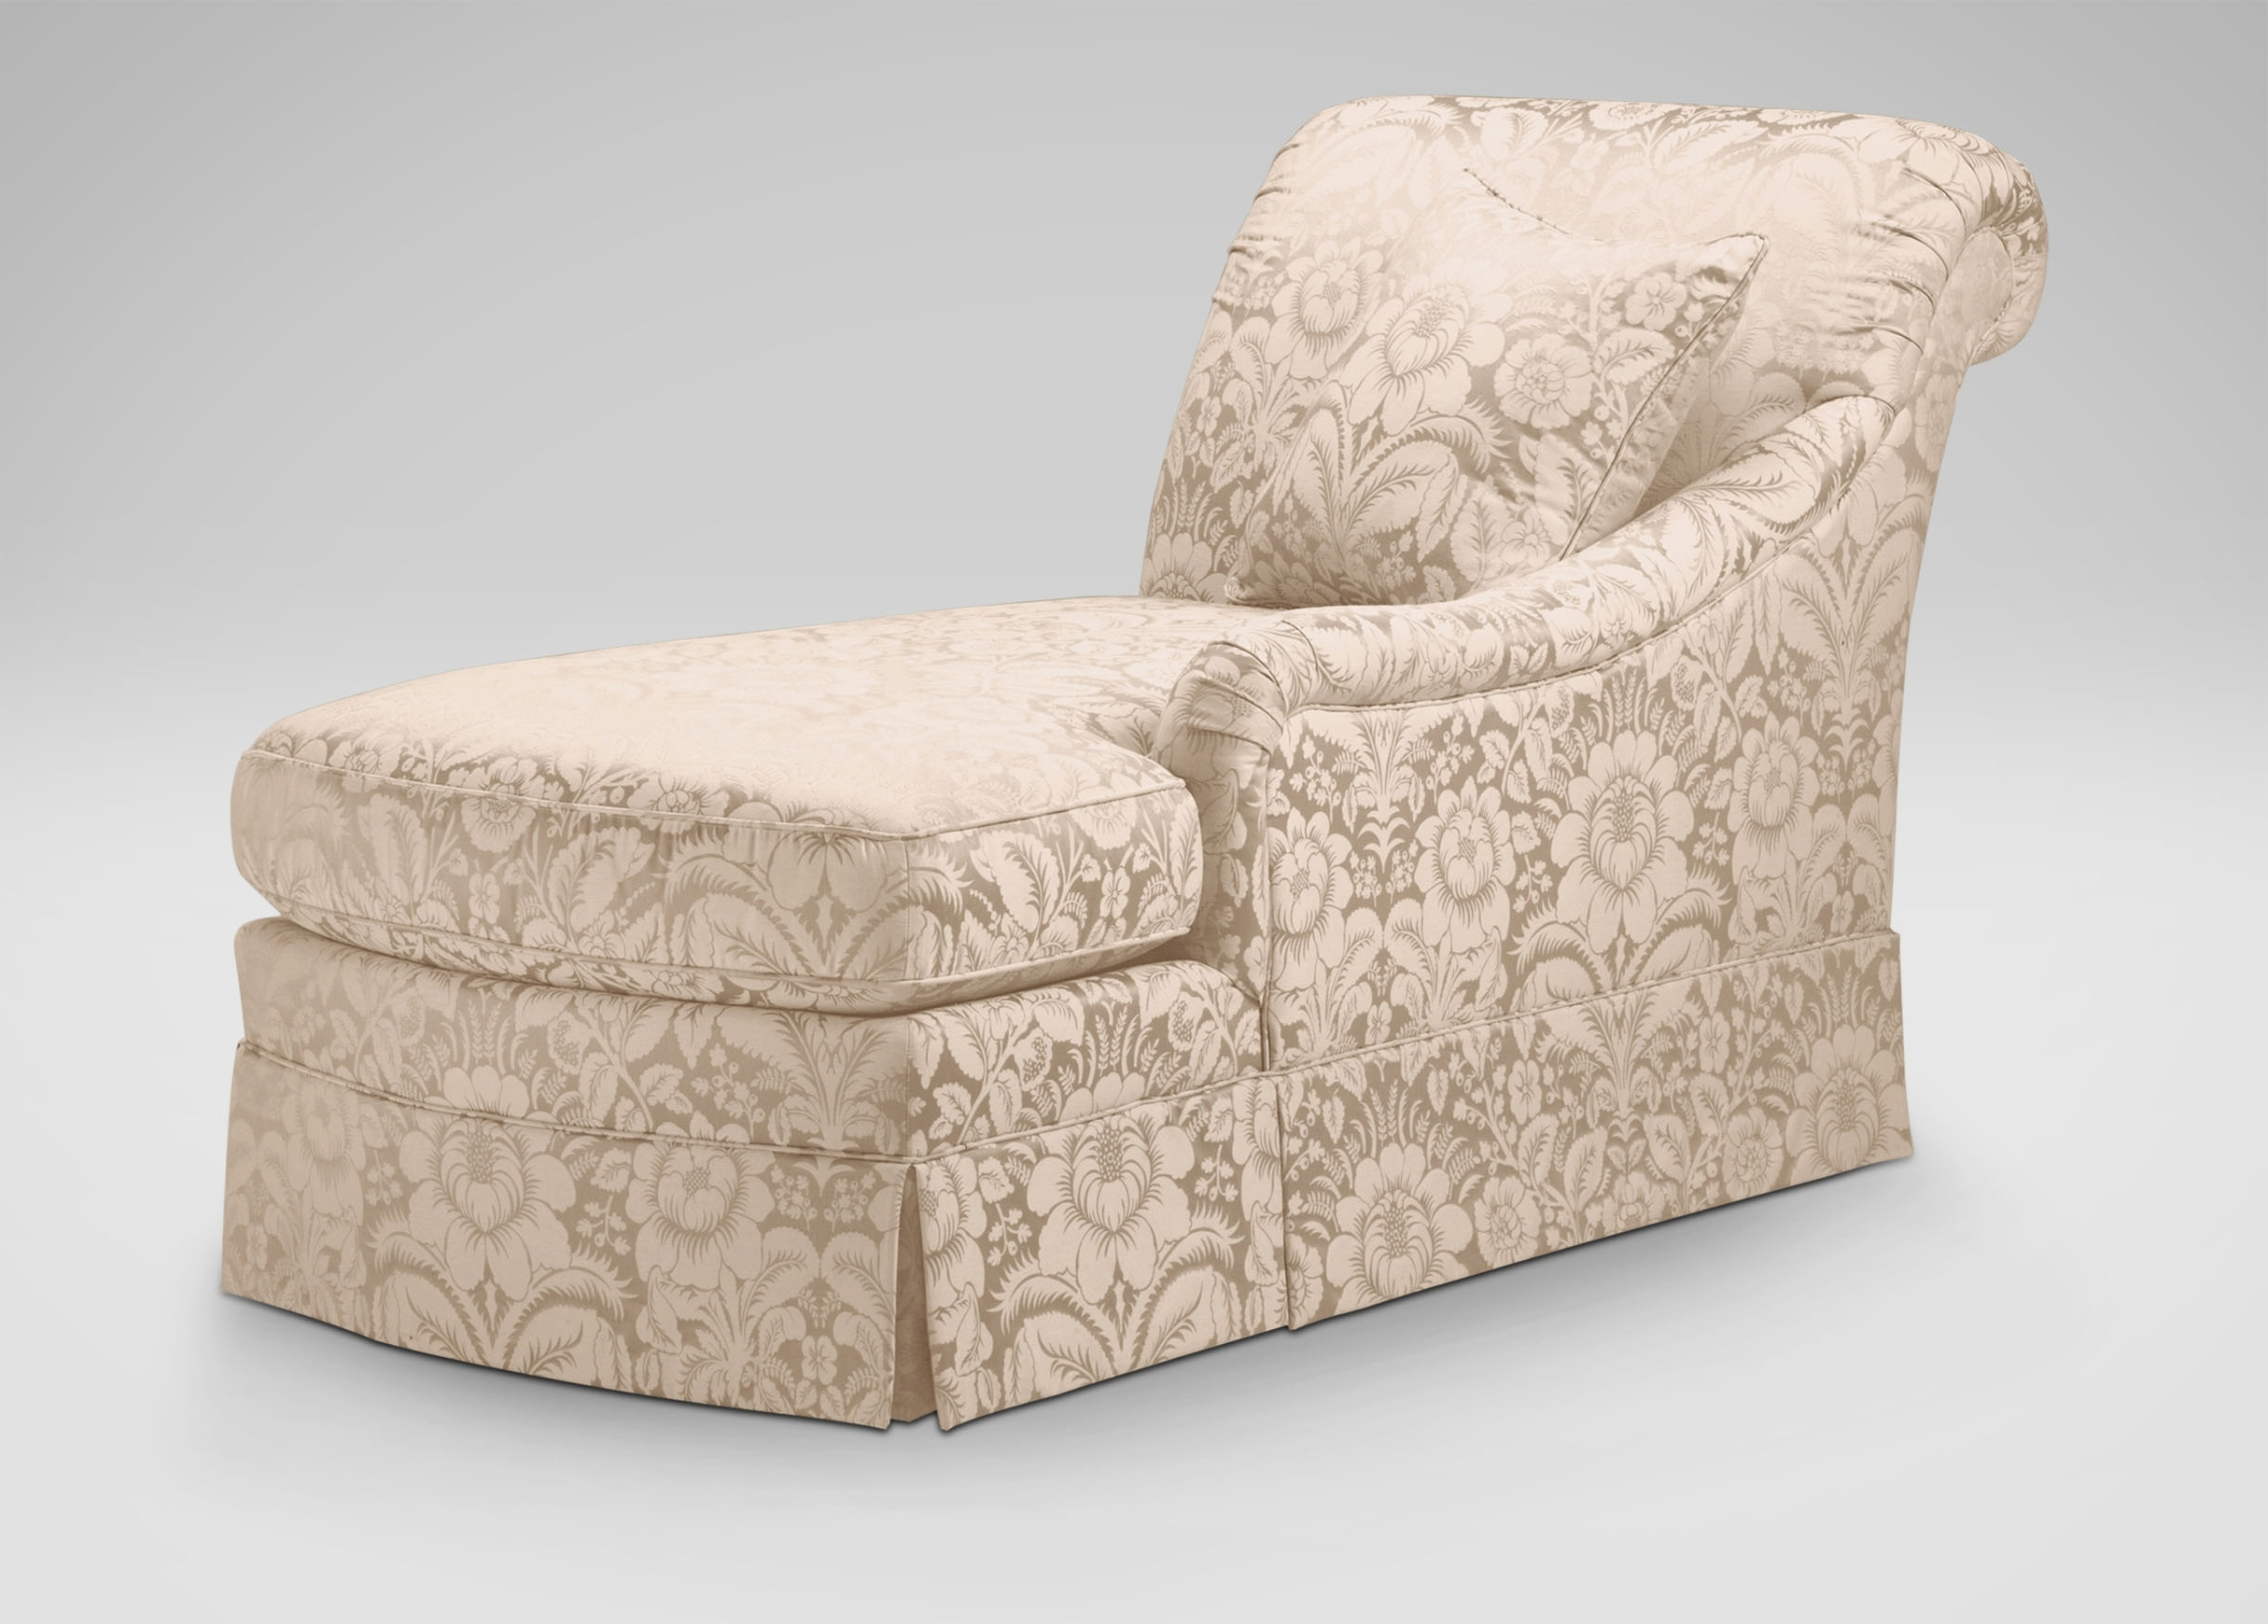 Well Known Chaise Lounge Slipcovers – Slipcovers For Chaise Lounge Chairs With Slipcovesr For Chaise Lounge (View 15 of 15)